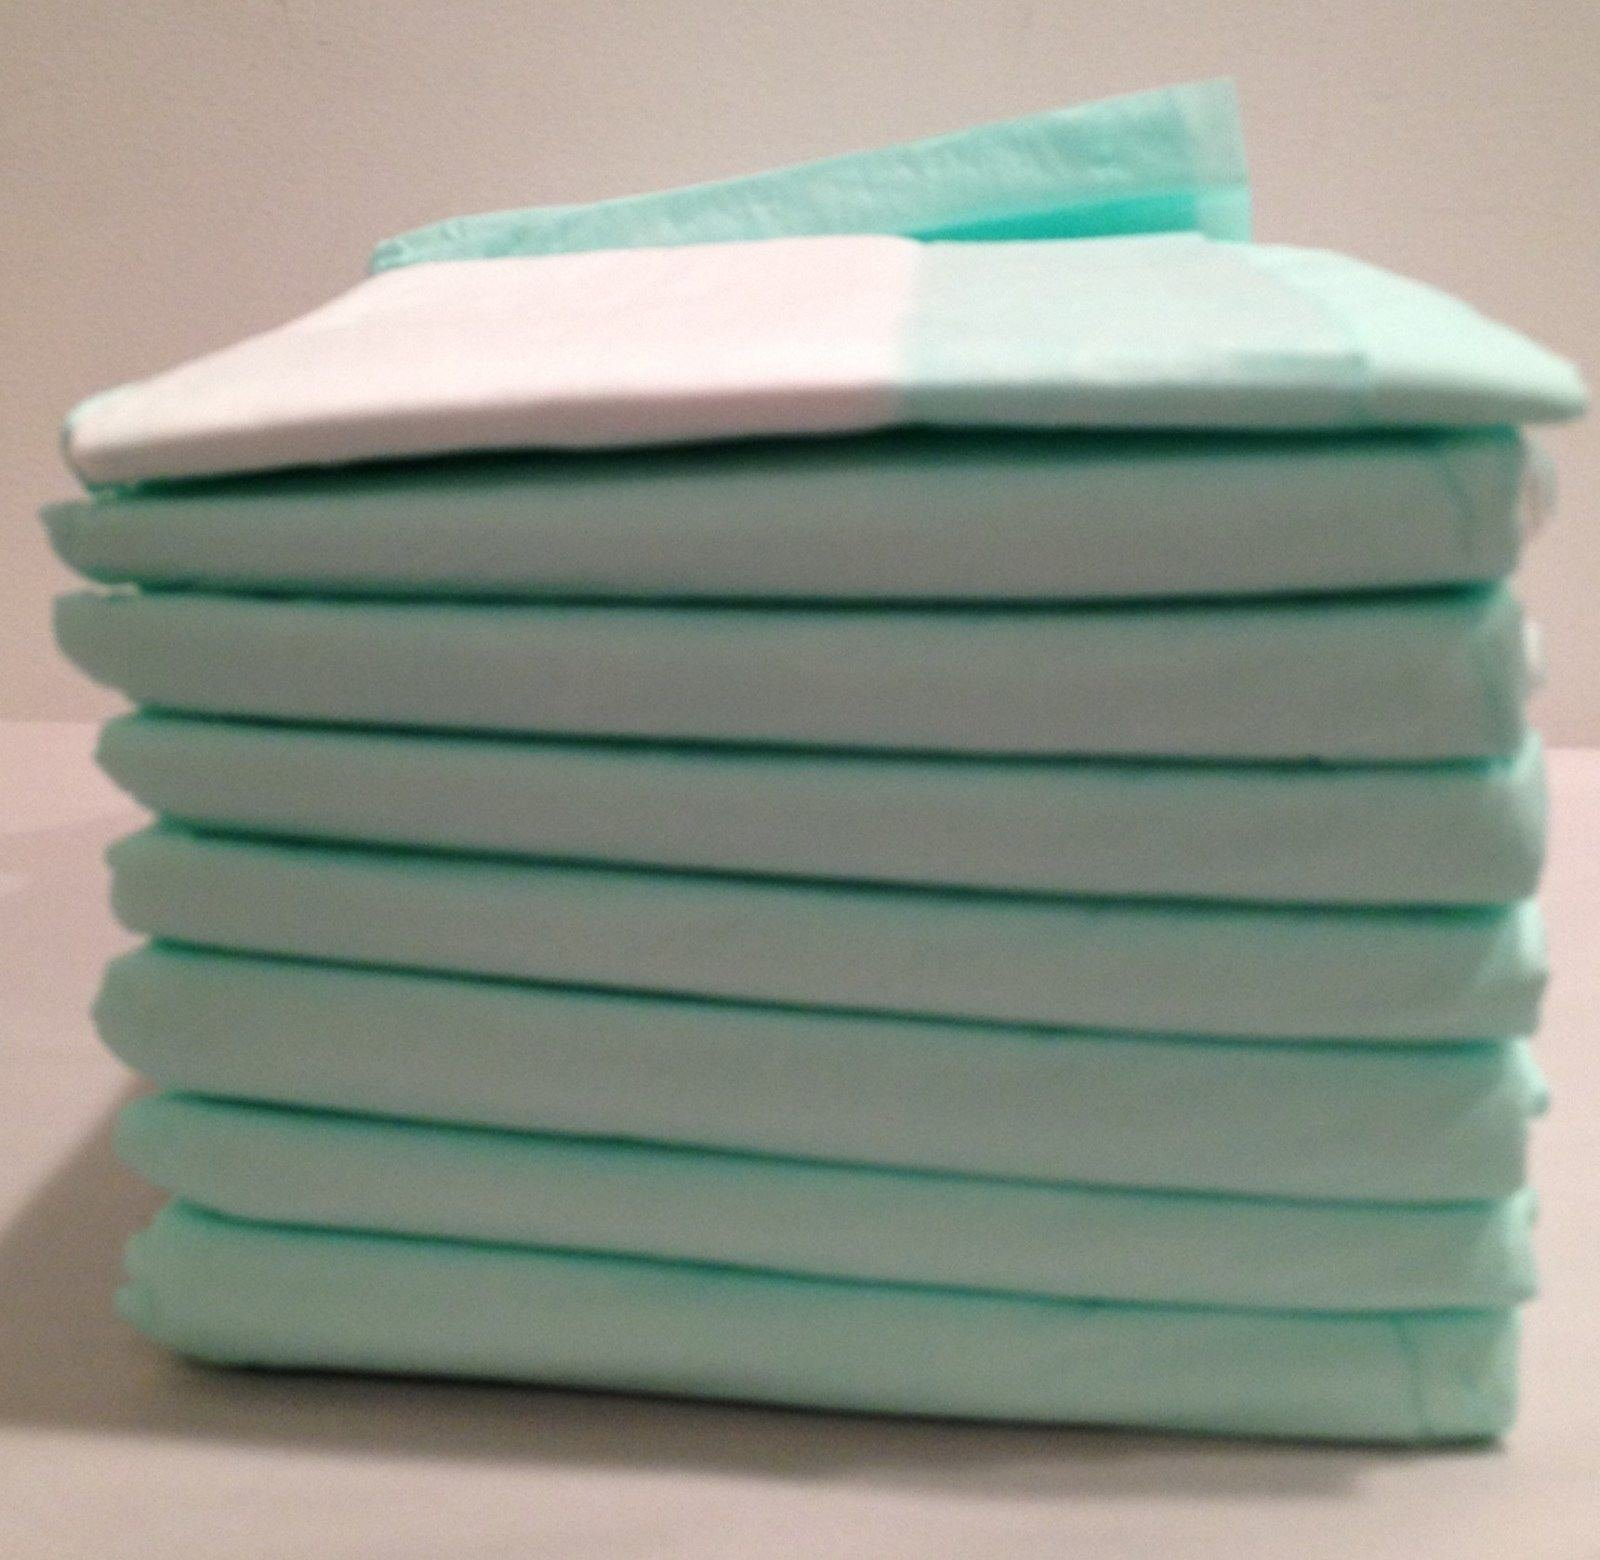 300 30x36 Dog Puppy Training Wee Wee Pee Pads Underpads